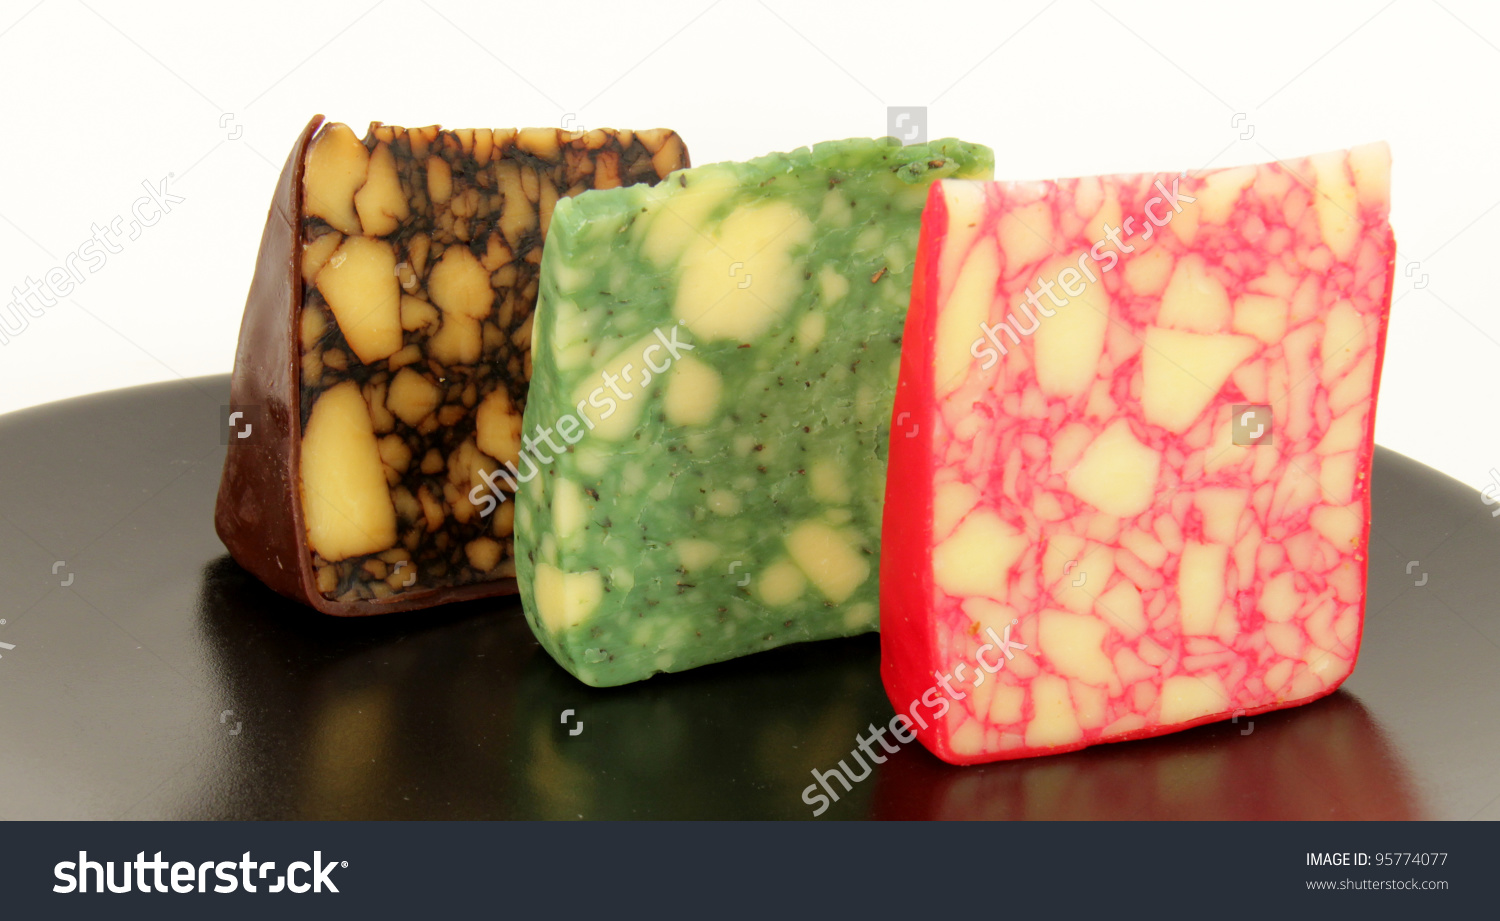 Sage Derby Cheddar Cheese Stock Photo 95774077.